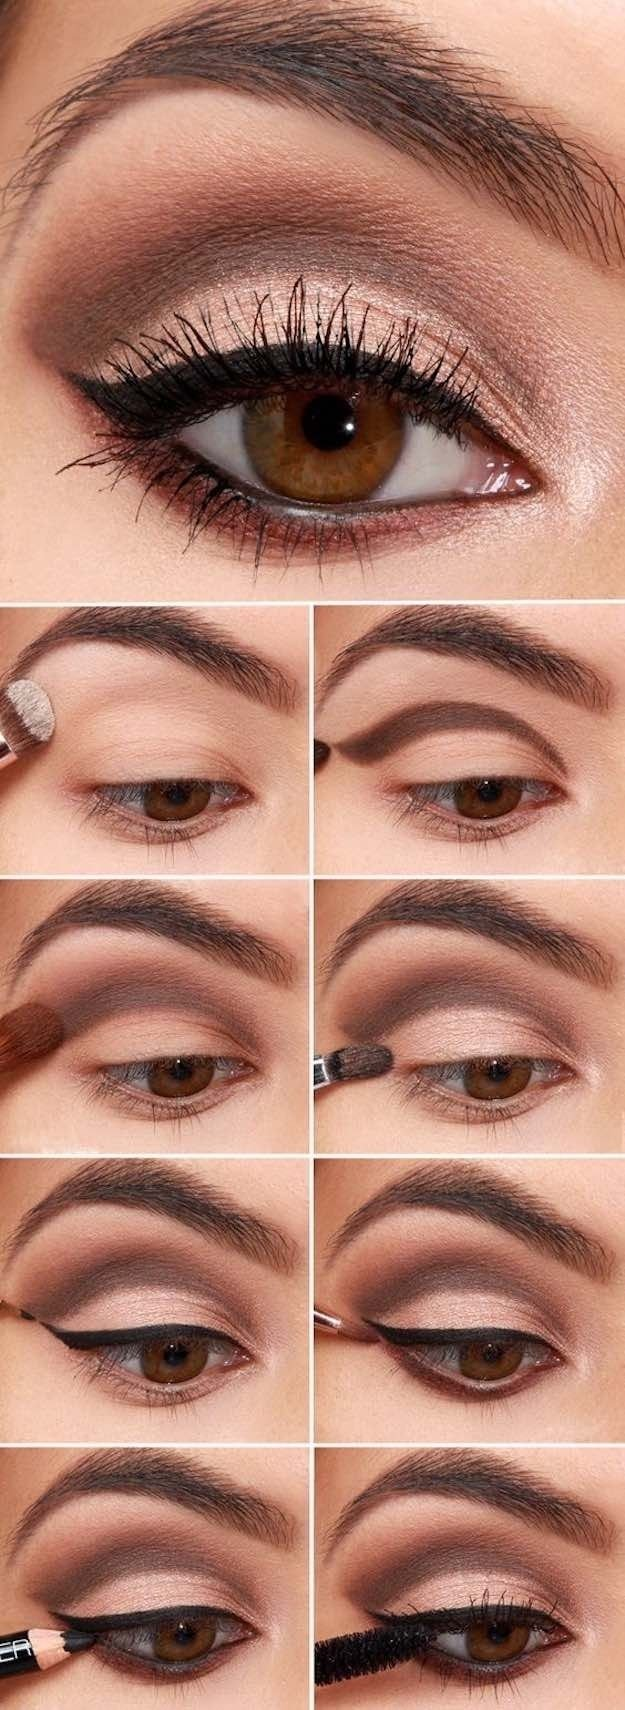 10 Perfect Wedding Makeup Ideas For Brown Eyes 30 wedding makeup ideas for brides maquillage coiffures et beaute